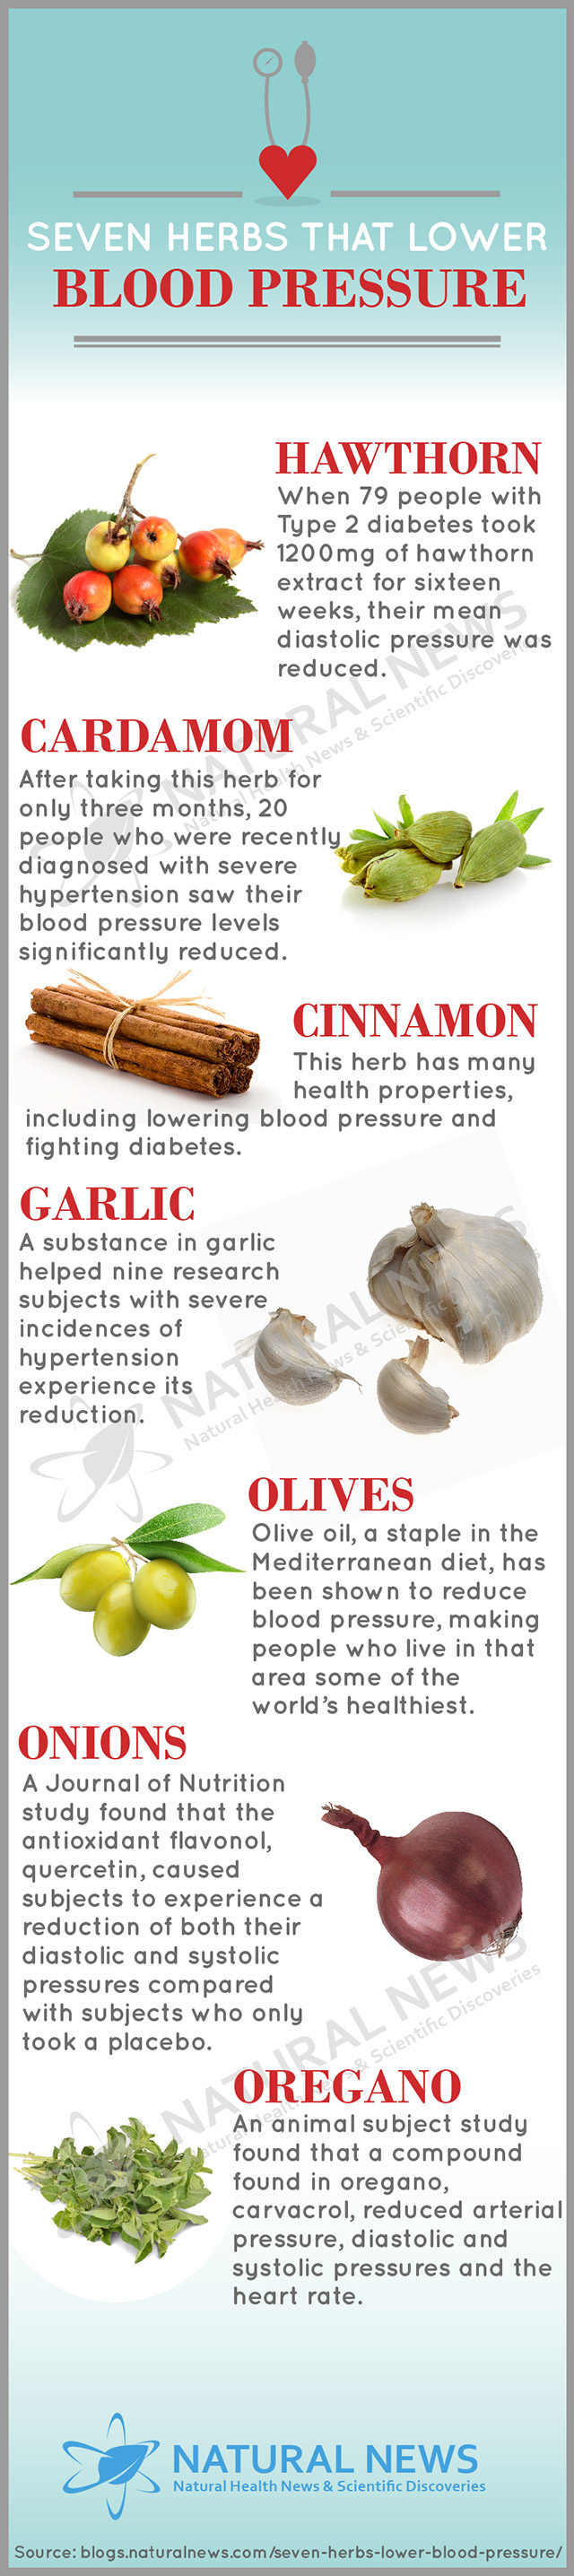 Infographic-Seven-Herbs-That-Lower-Blood-Pressure